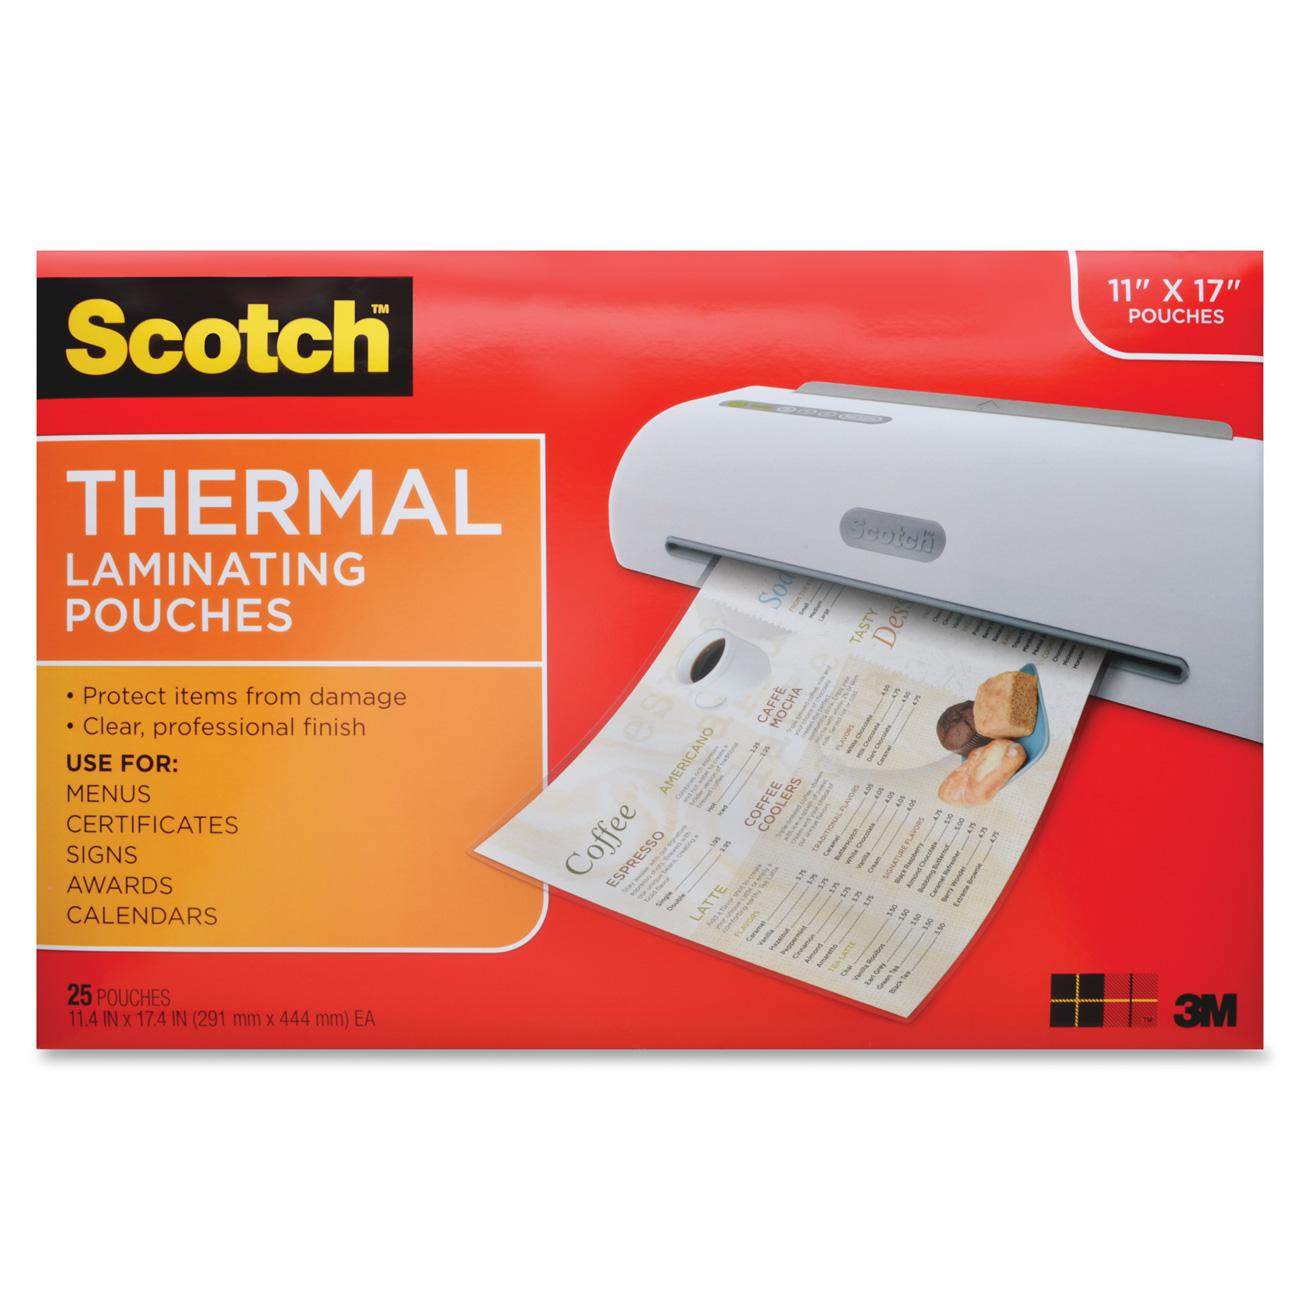 Scotch Thermal Laminating Pouches 25 Pack, Menu Size Sheets